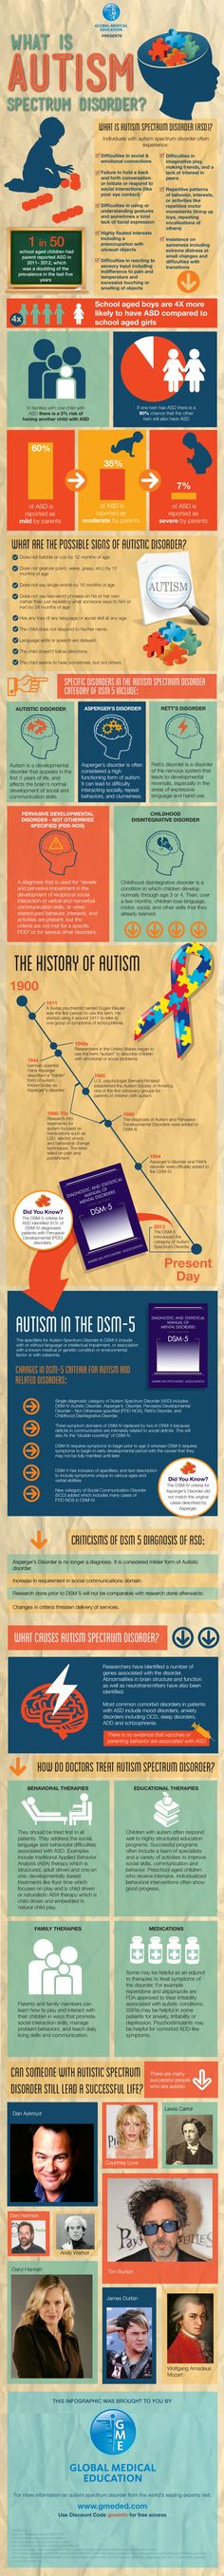 What is Autism Spectrum Disorder (ASD)? infographic